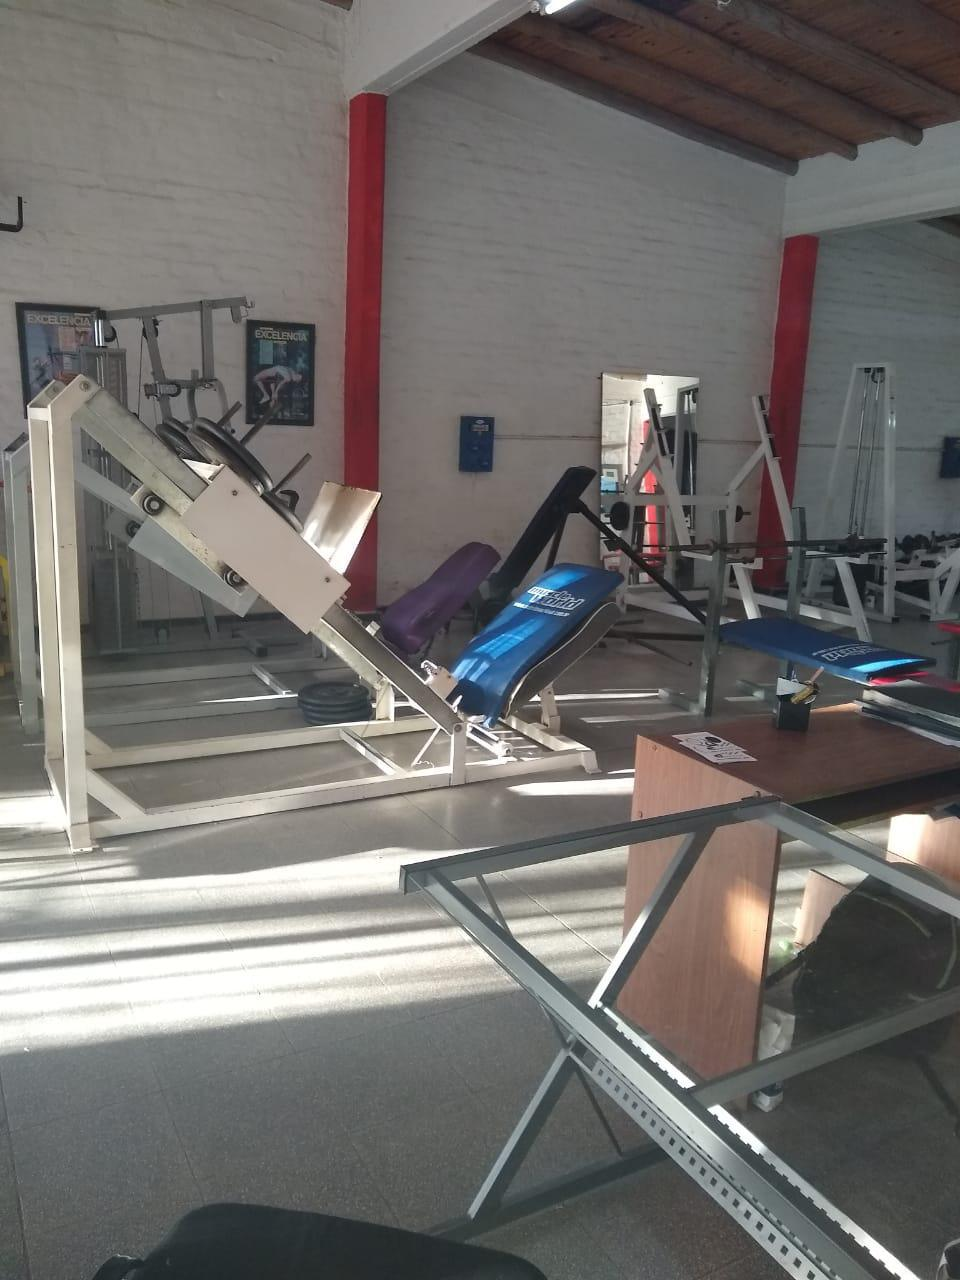 RM Fitness Center